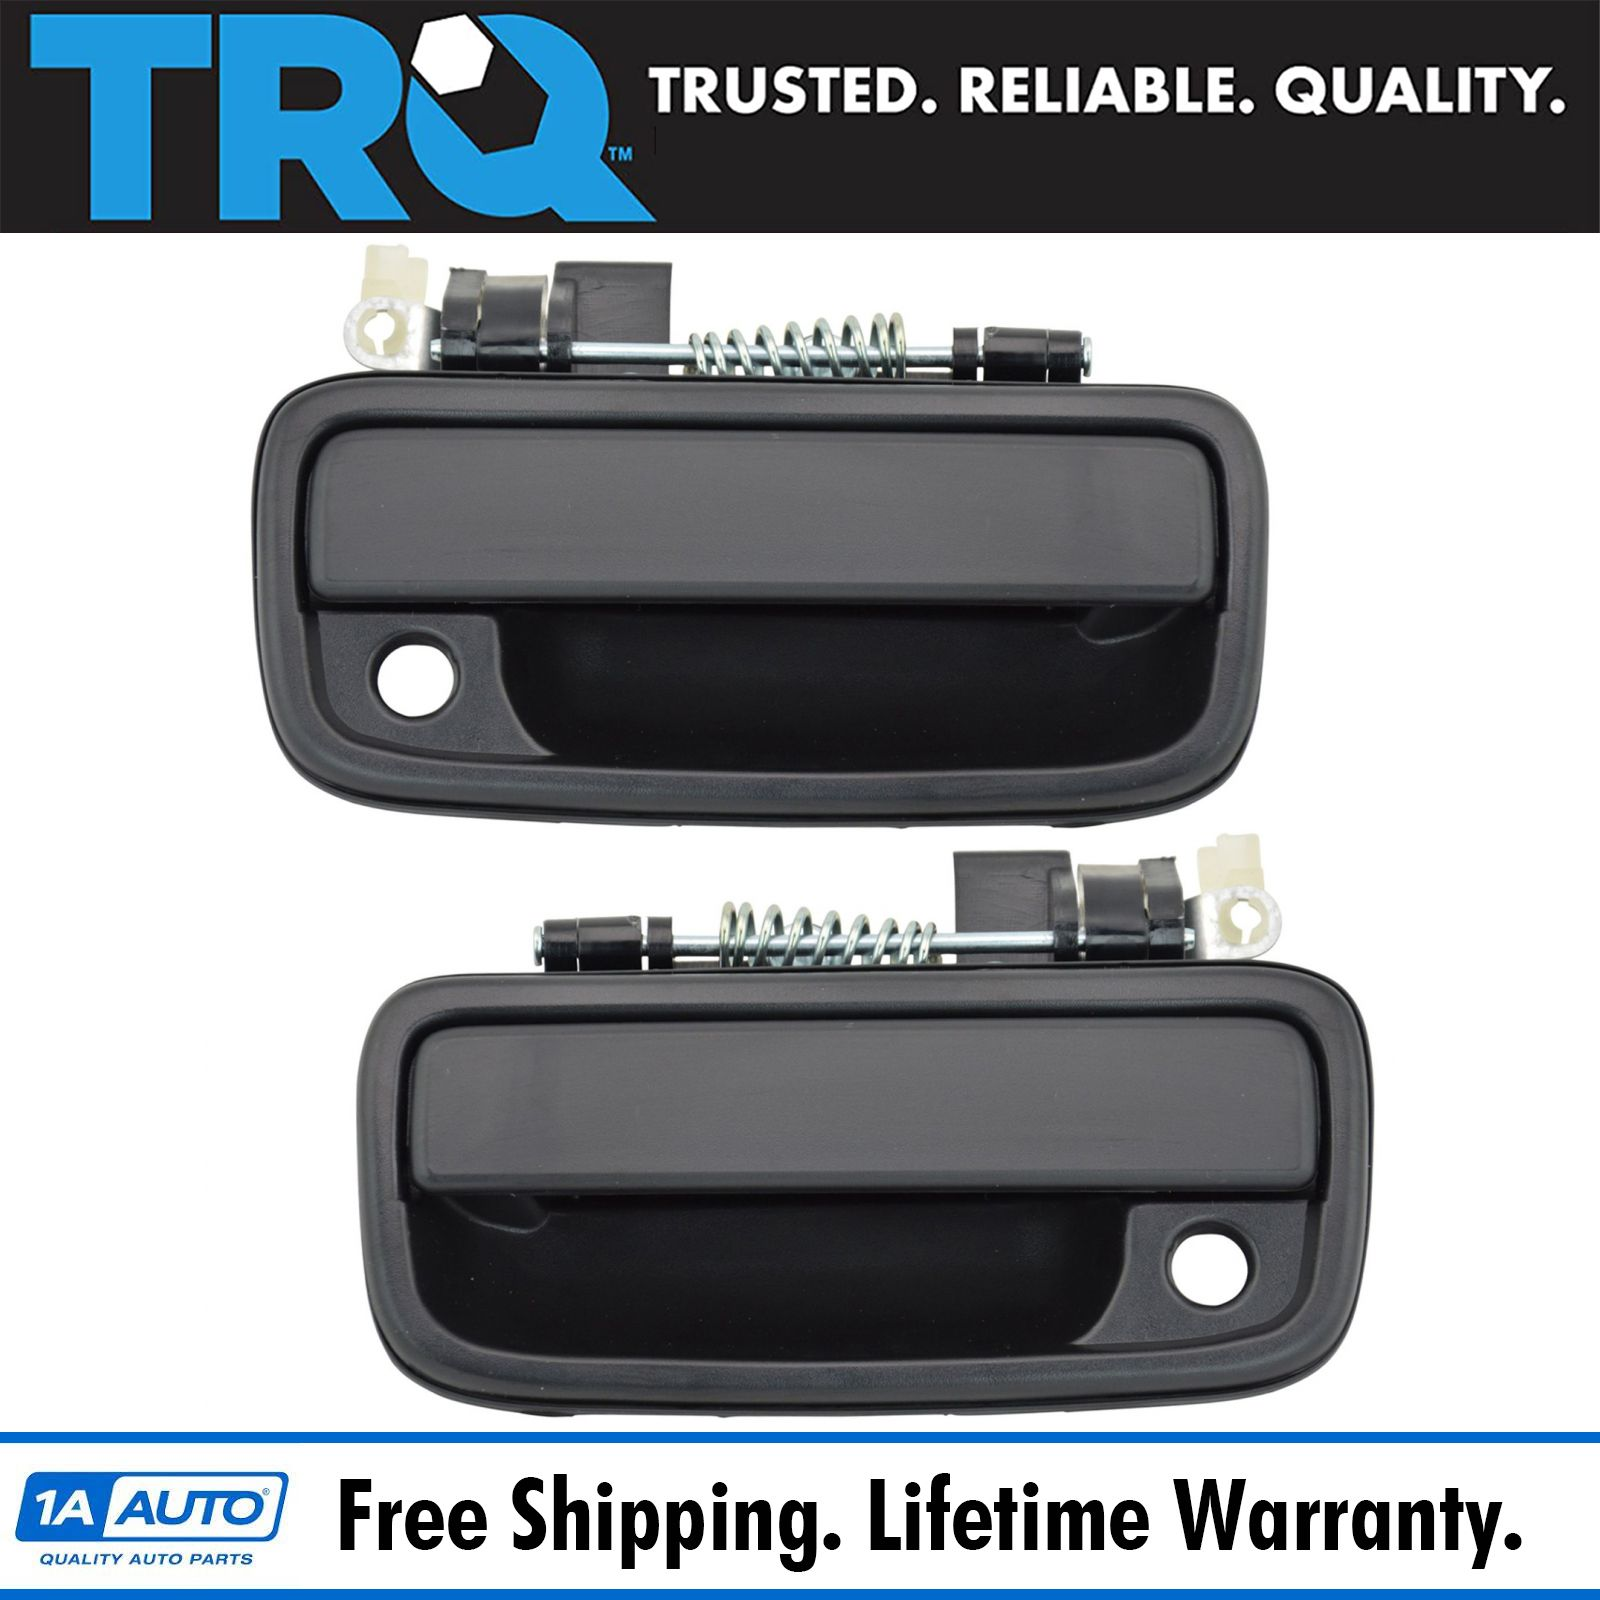 Trq Black Outer Exterior Door Handle Lh Rh Set For 95 04 Tacoma Pickup Truck Ebay